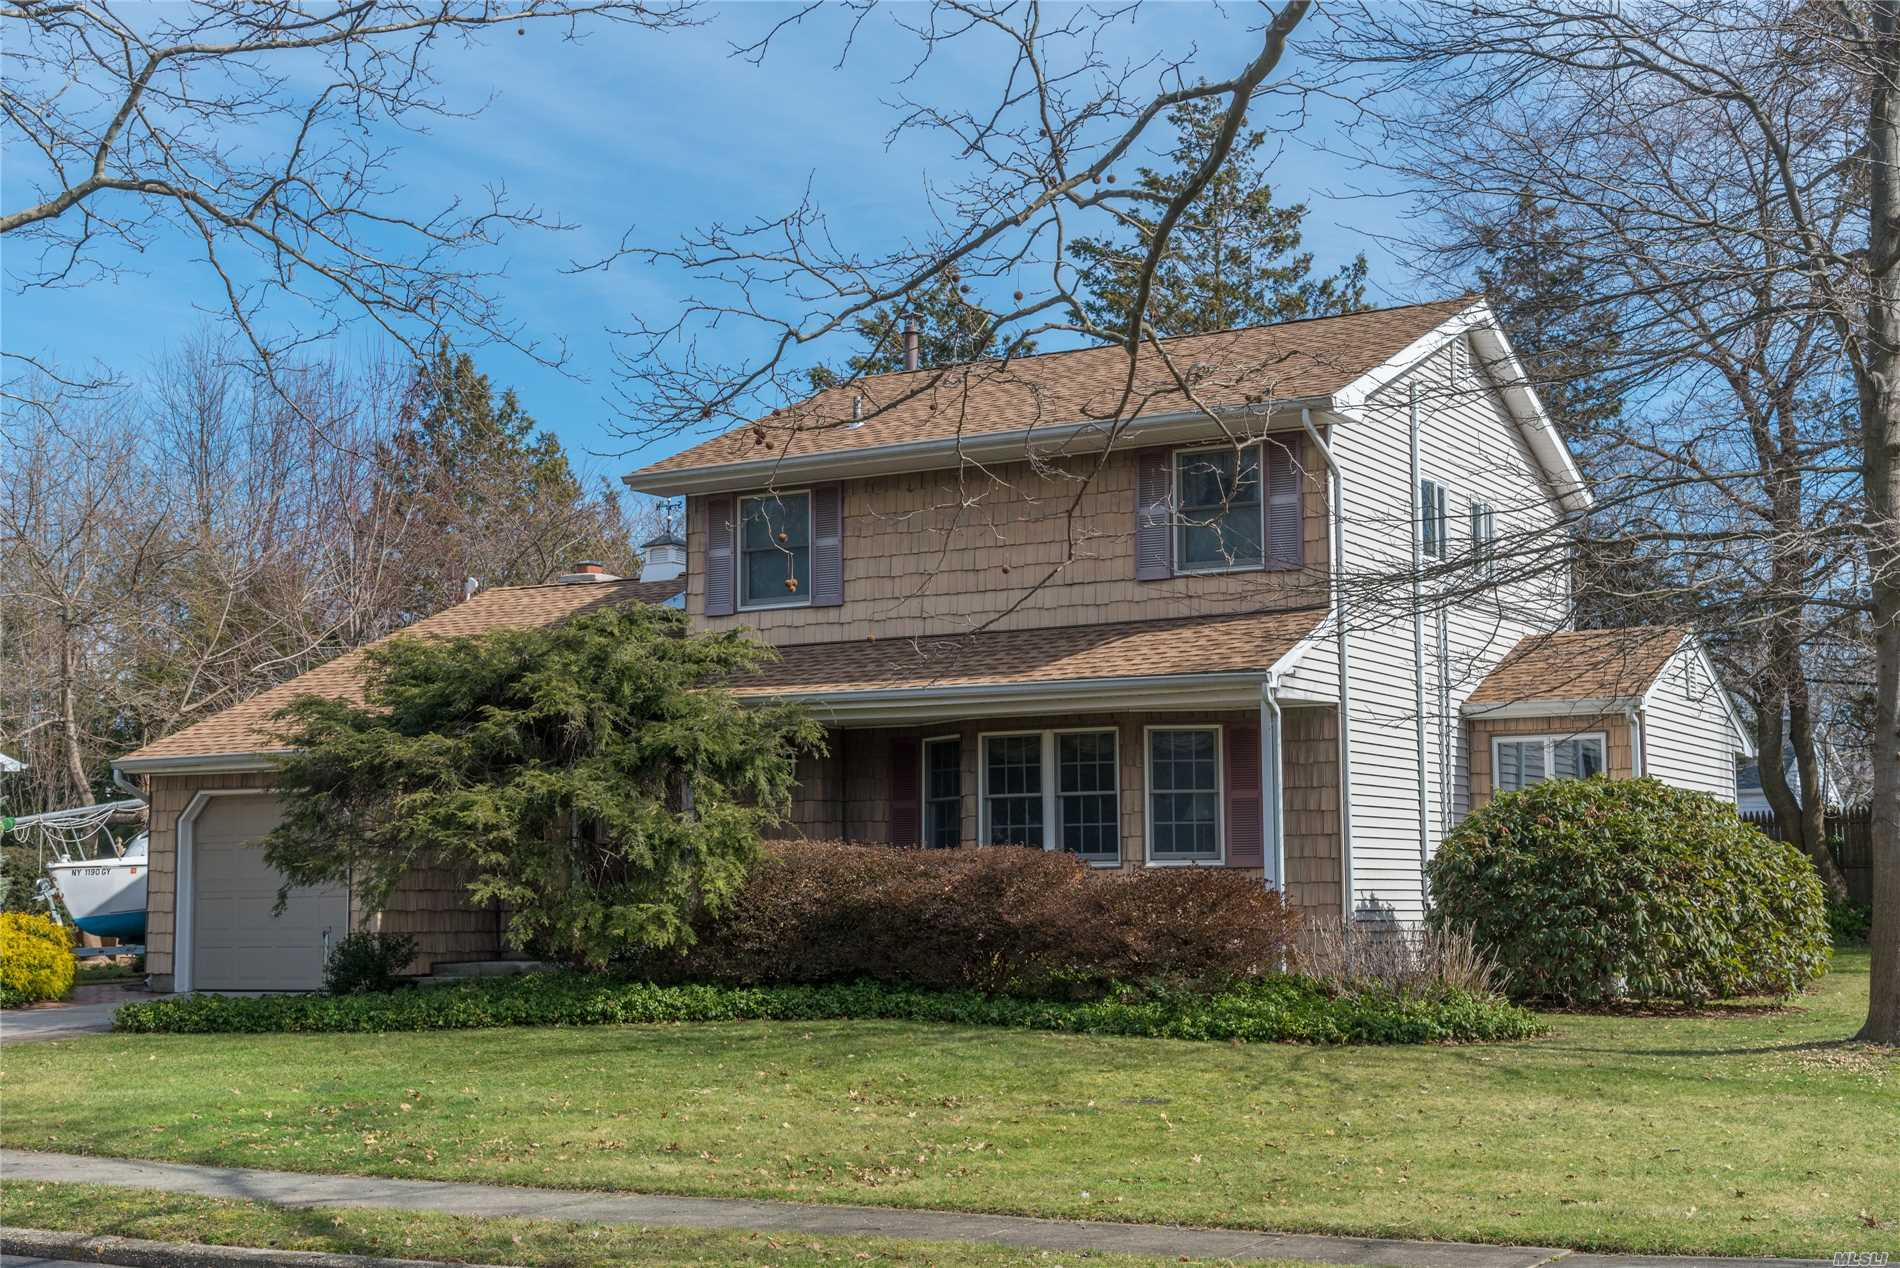 Wonderful 3-Bd, 1.5-Bth Colonial! Foyer W/Wood Flrs & Skylight. Lr W/Wood Flrs & Bay Window. Upd Maple/Granite Eik W/Gas Cooking. Family Rm W/Fpl & Sliders To Yard. Bdrms W/Hardwood Flrs. Updates Incl Anderson/Pella/Marvins, Cac, Kitchen, Bths, Gas Boiler/Hw Heater, Igs, Roof, Siding, Paver Walks. Prvt Yard. Easy Access To Lirr, School, Library, Shops. Blue Ribbon Schools.